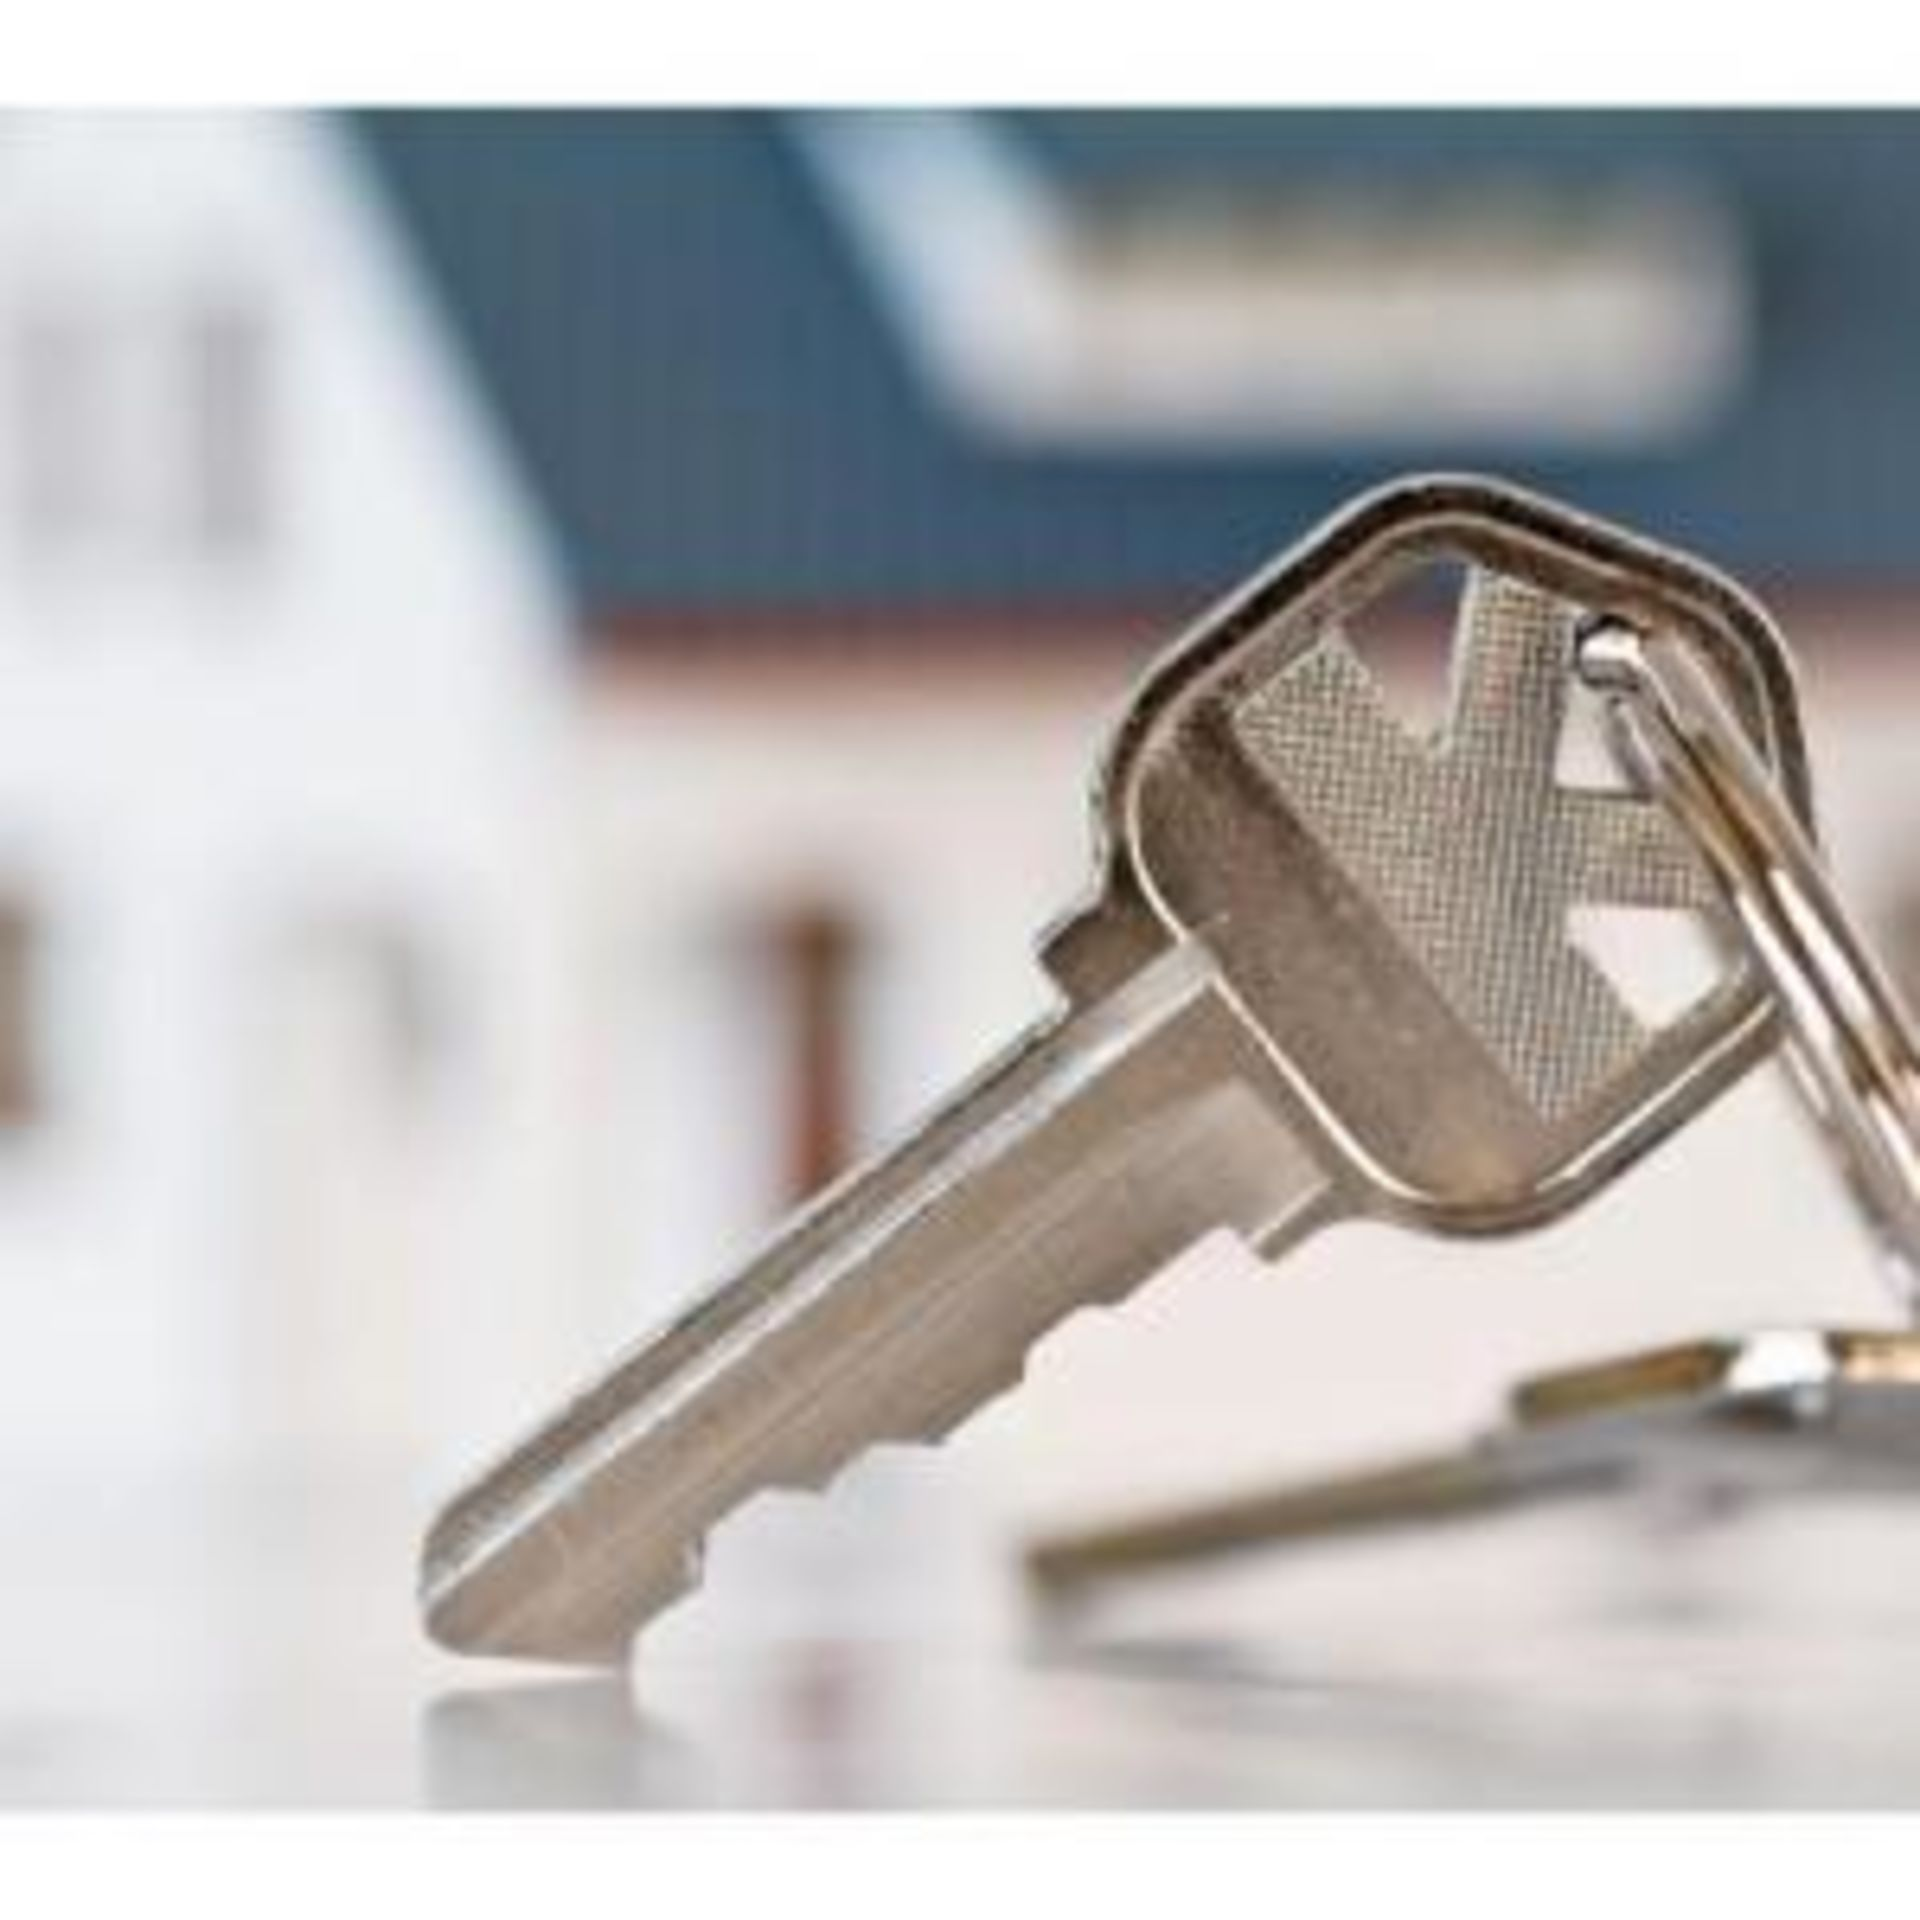 The Home Buying 'Smile'